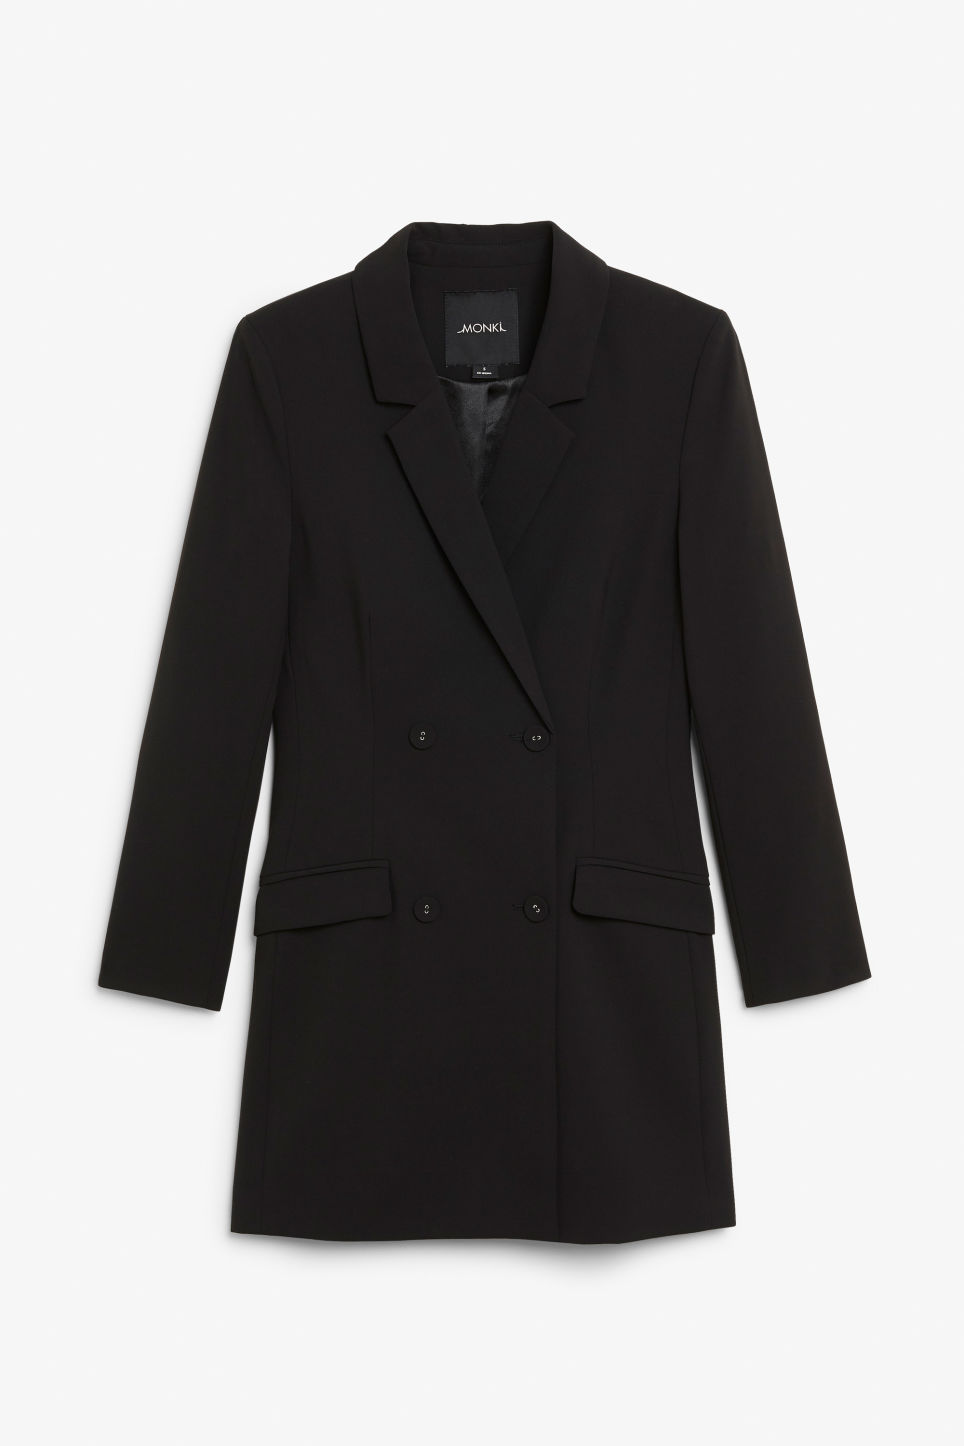 Front image of Monki long blazer dress in black